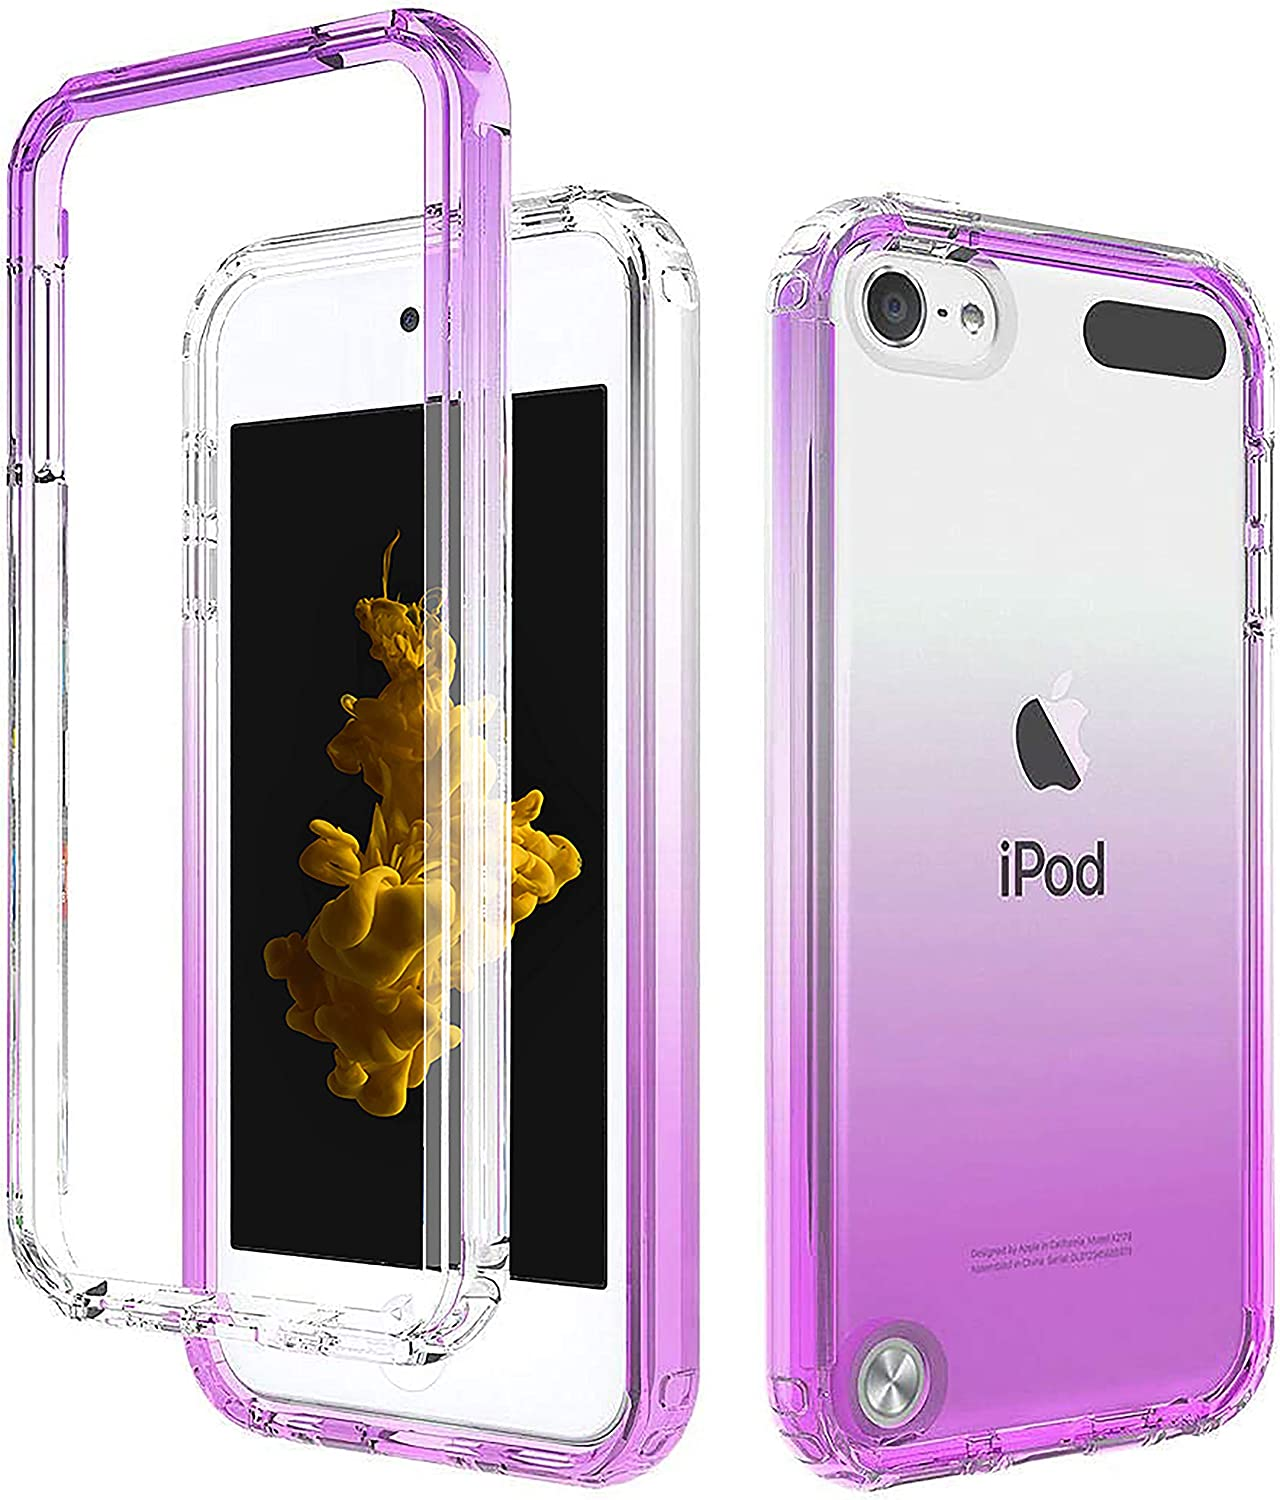 Purple iPod Touch Case with Built-In Screen Protector for 5, 6, and 7 Generation, Anti-Scratch and Shock-Resistant Cover for Apple iPod with Soft-Grip Bumper, Transparent and Slim Fit Protective Shell